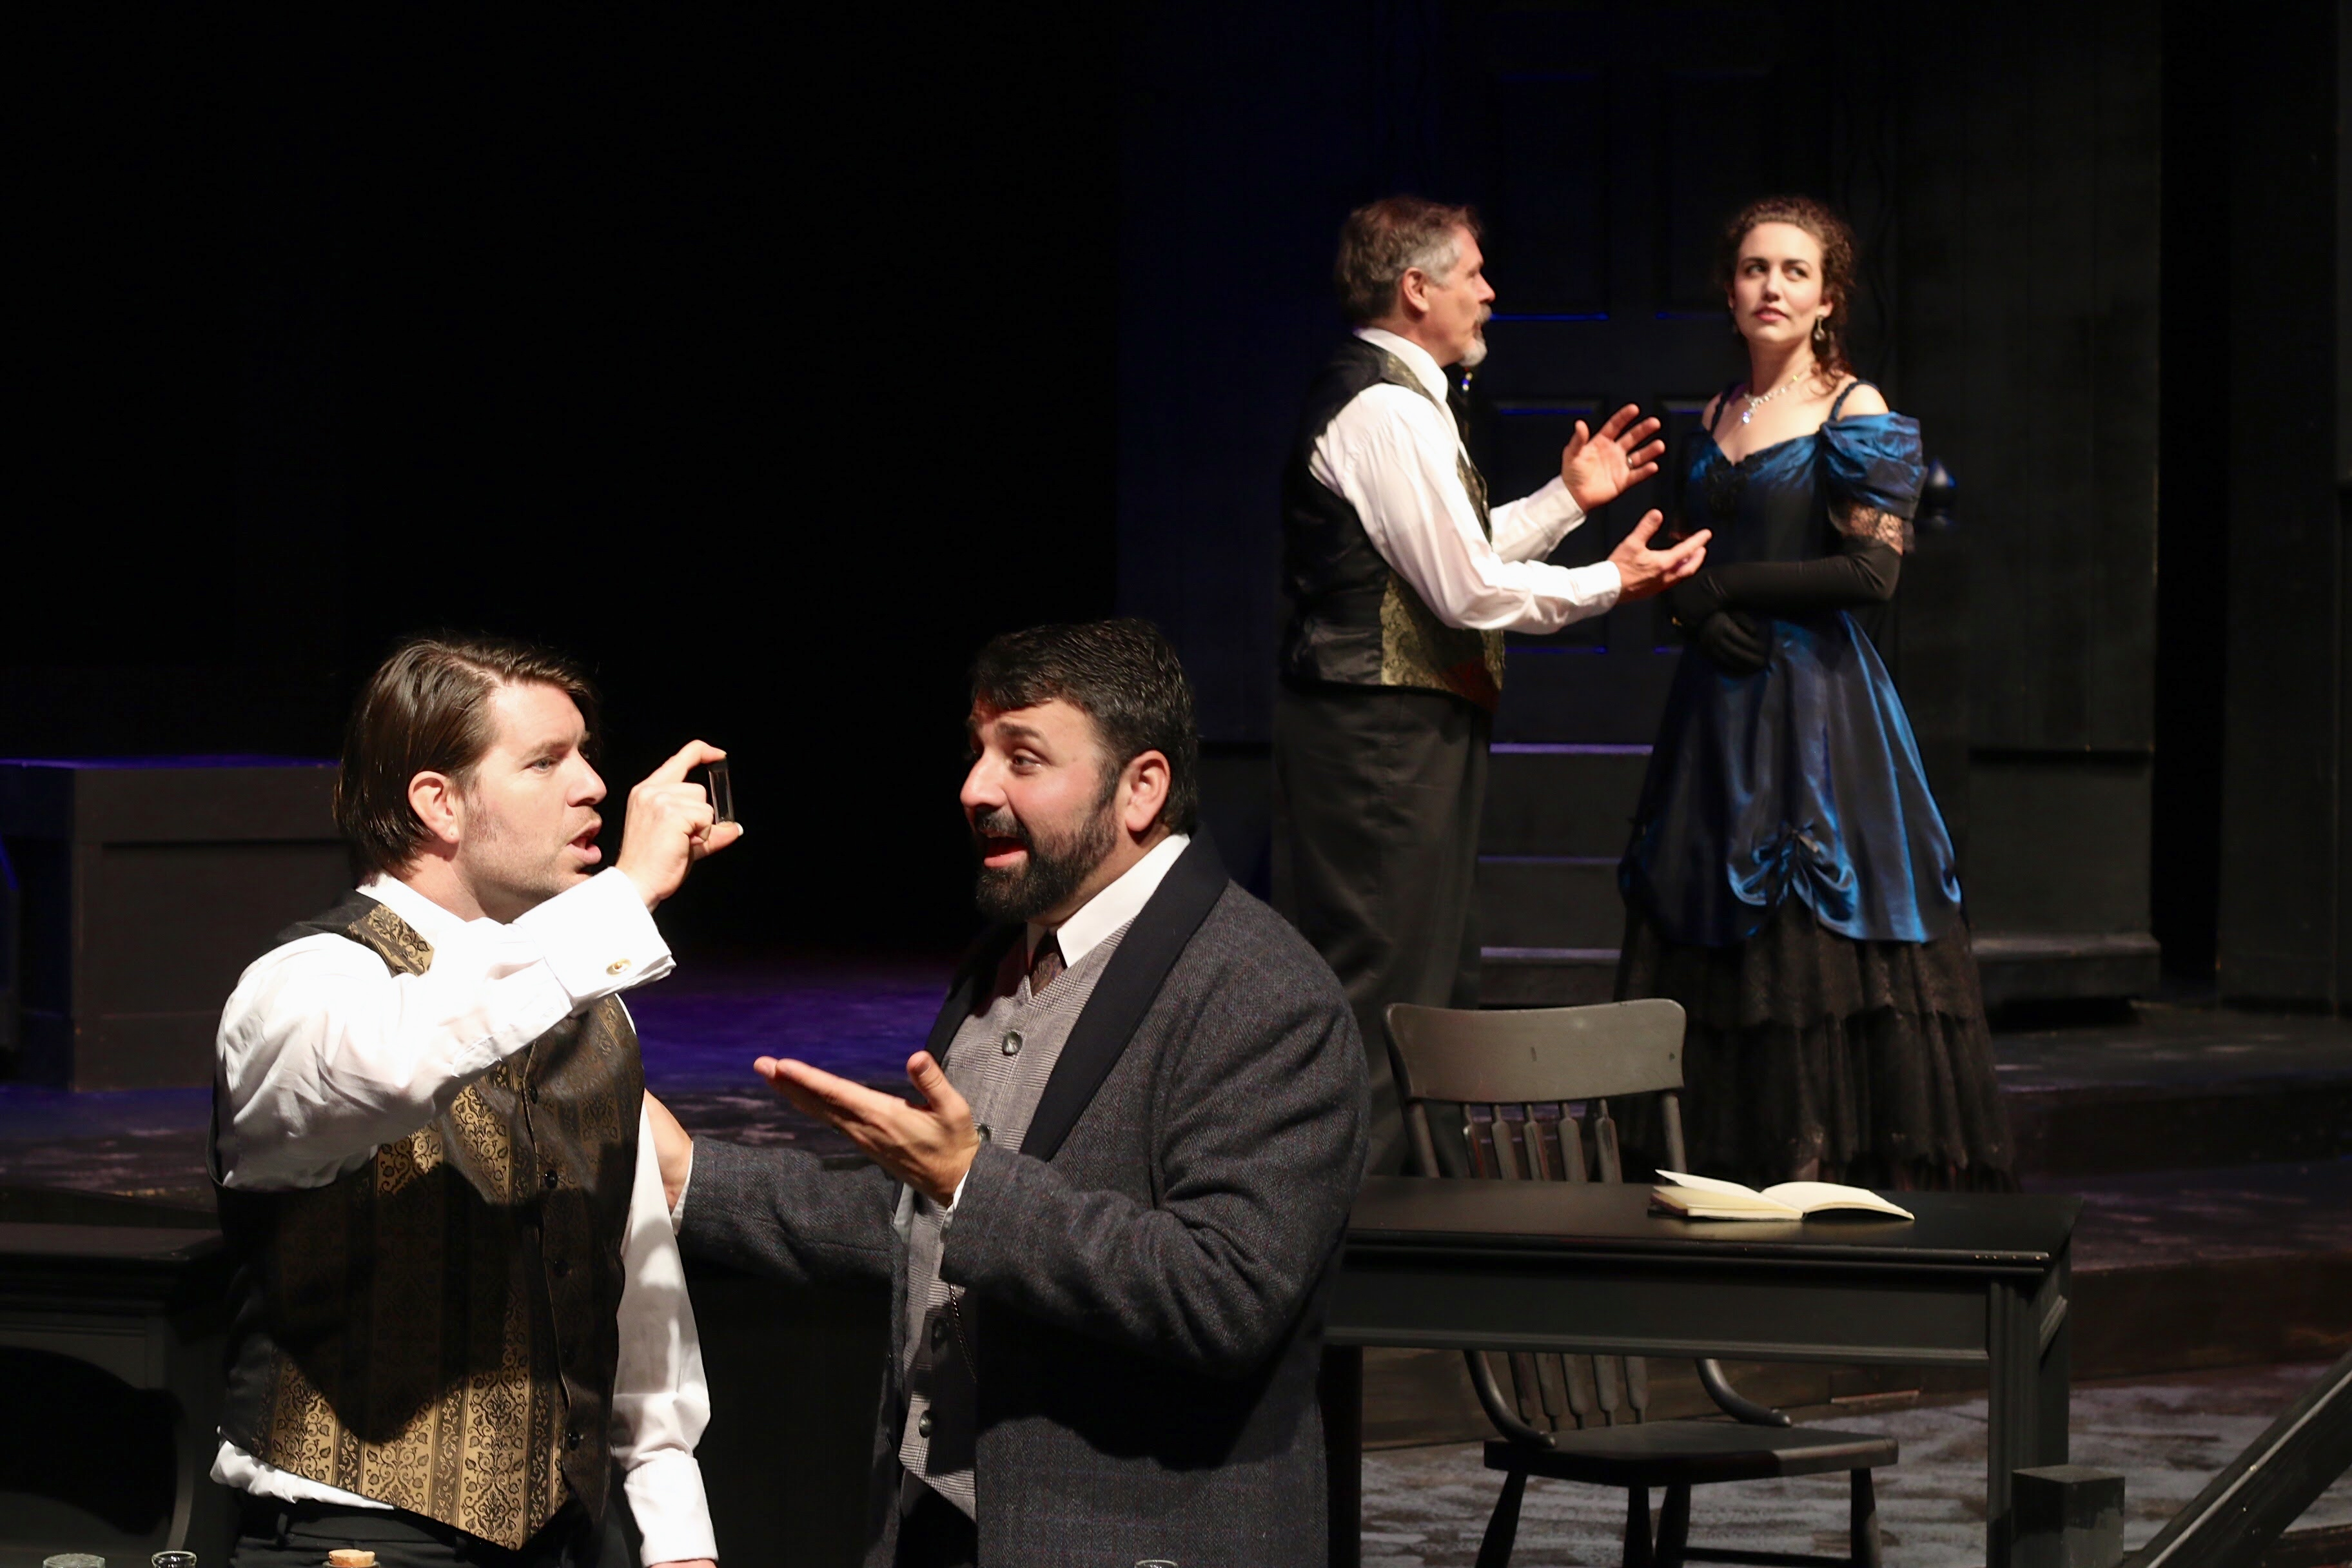 """Cottage Grove Theatre overcomes obstacle to innovative casting of title roles in its production of """"Jekyll & Hyde"""""""